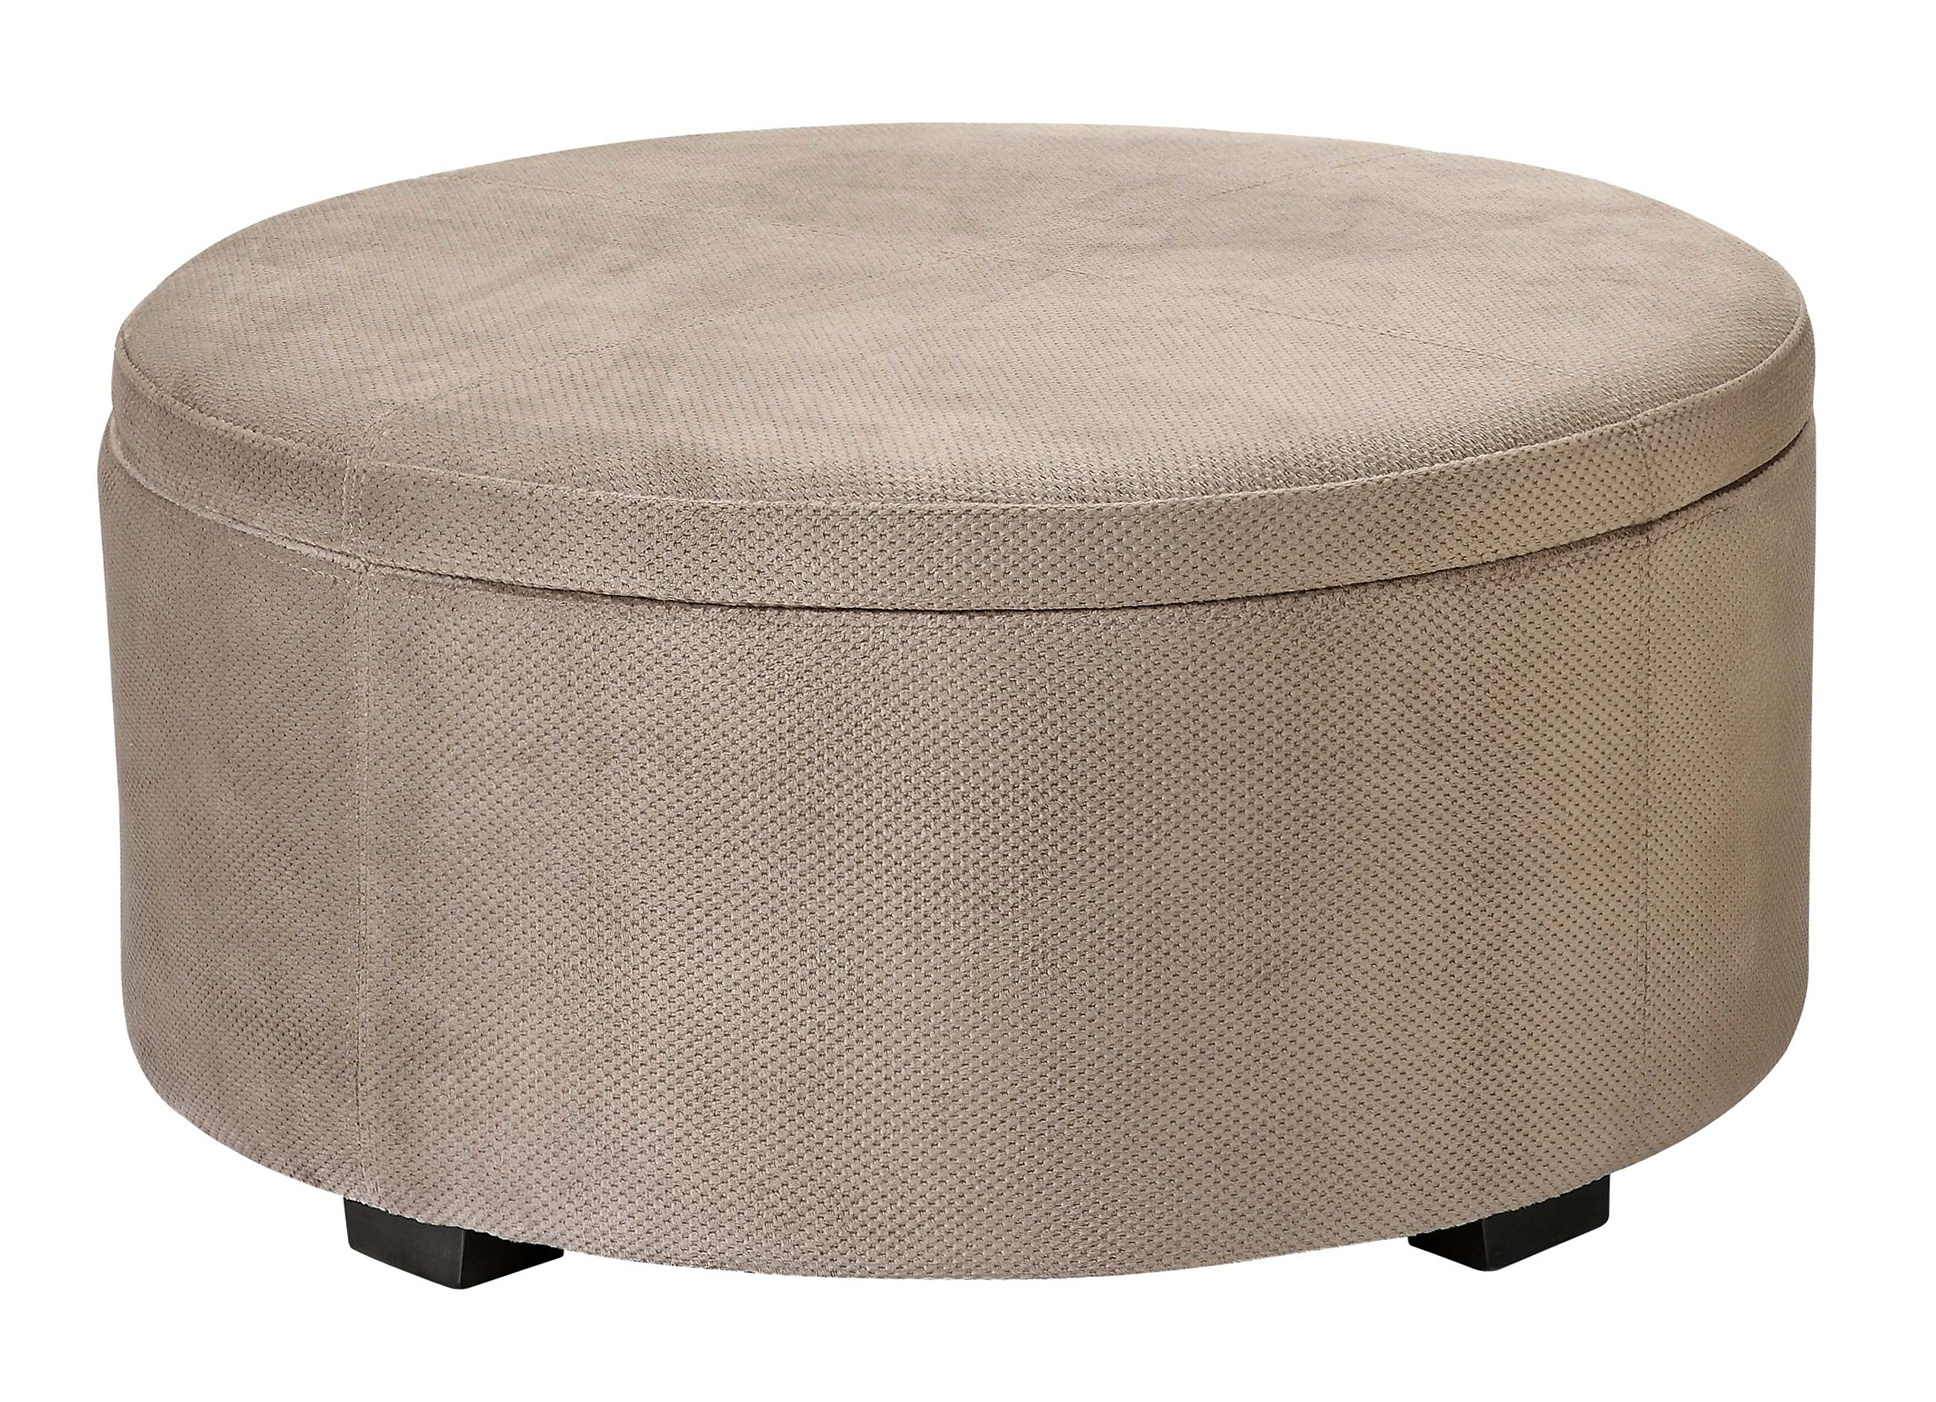 Upholstered Ottoman With Tray